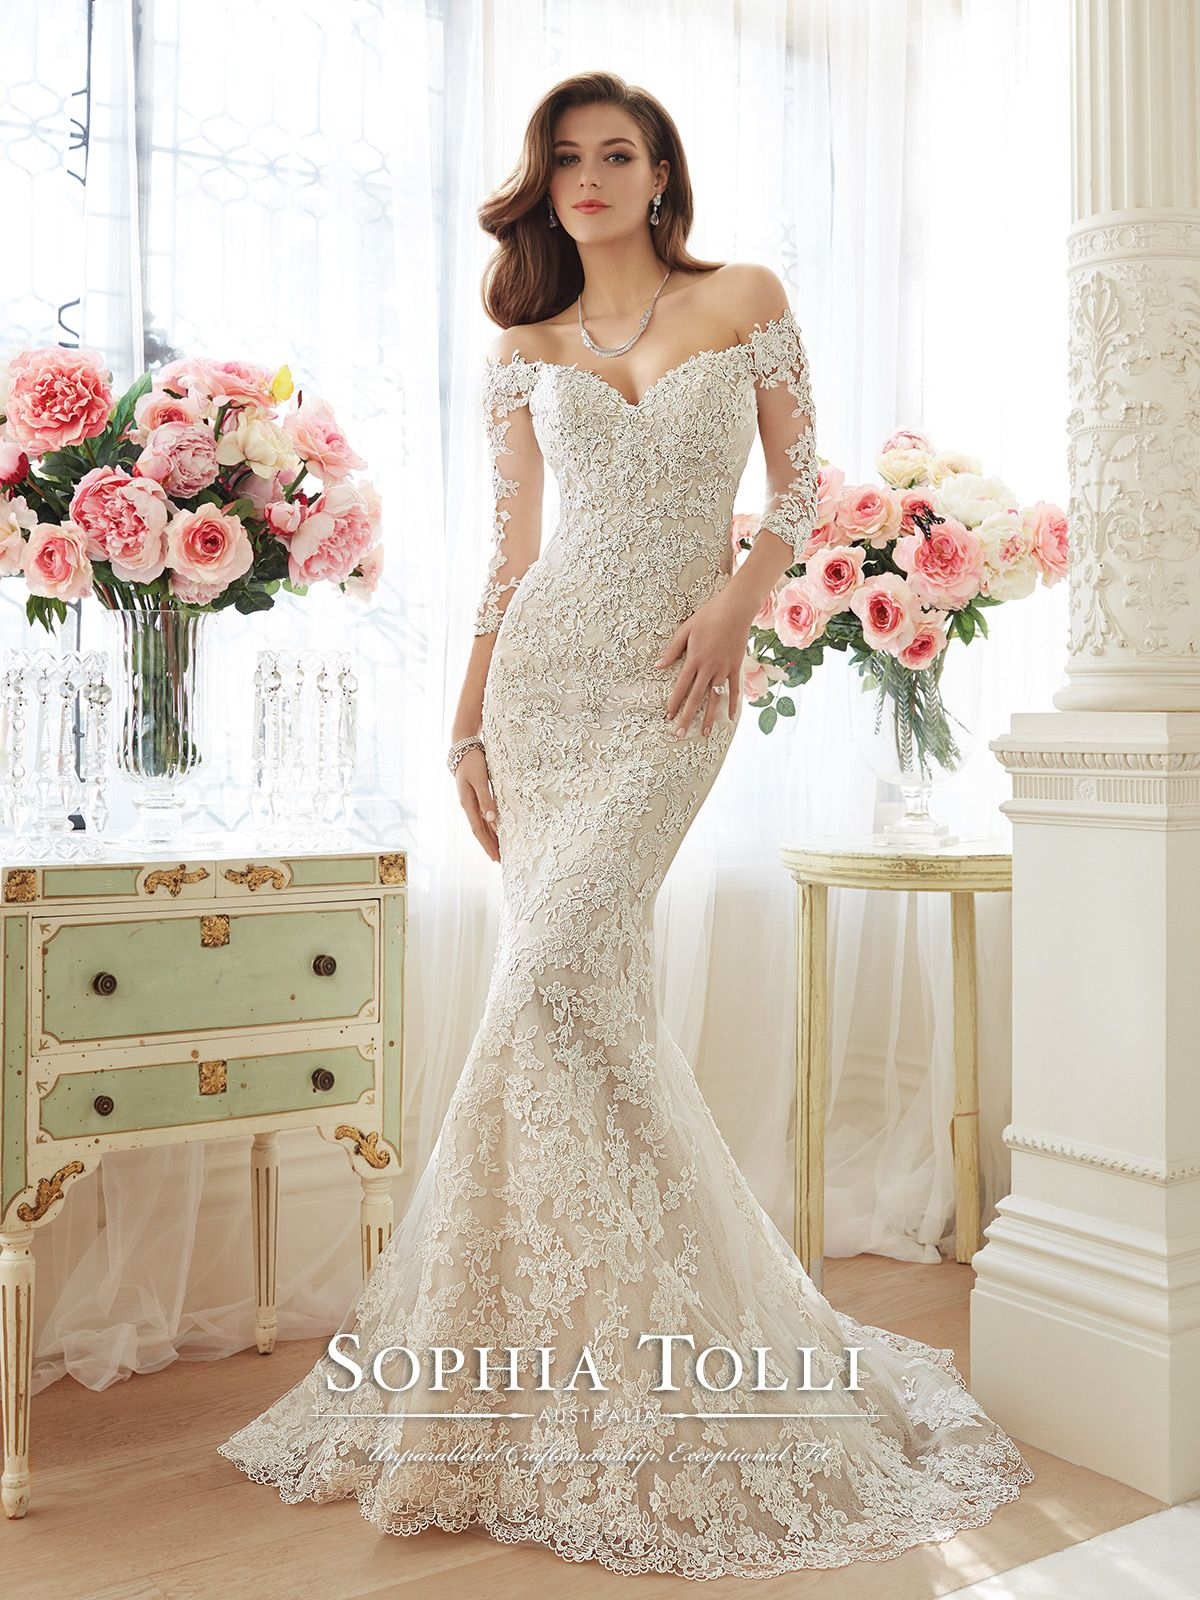 b9fd9e896f22 Off-the-shoulder lace and misty tulle trumpet gown with sheer lace  three-quarter length sleeves